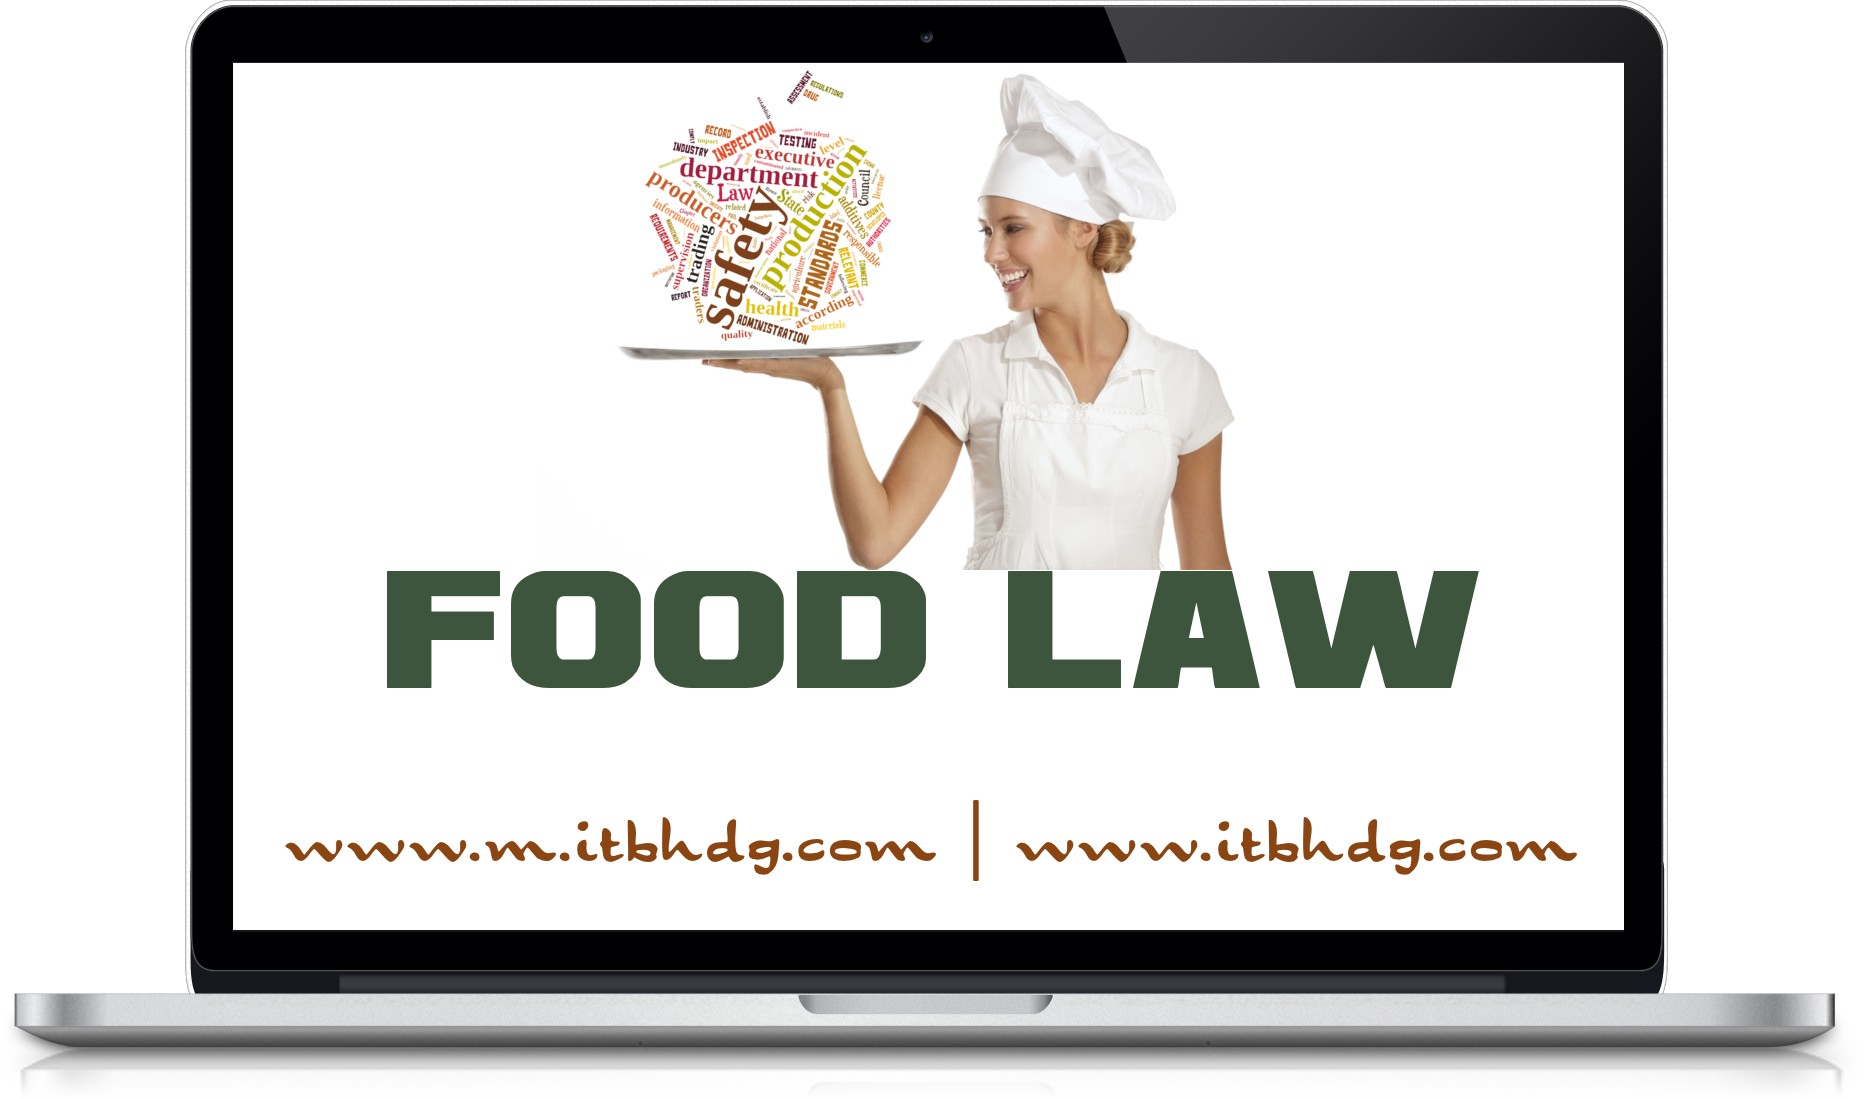 FDA Registration of your Food Company | www.m.itbhdg.com | www.itbhdg.com